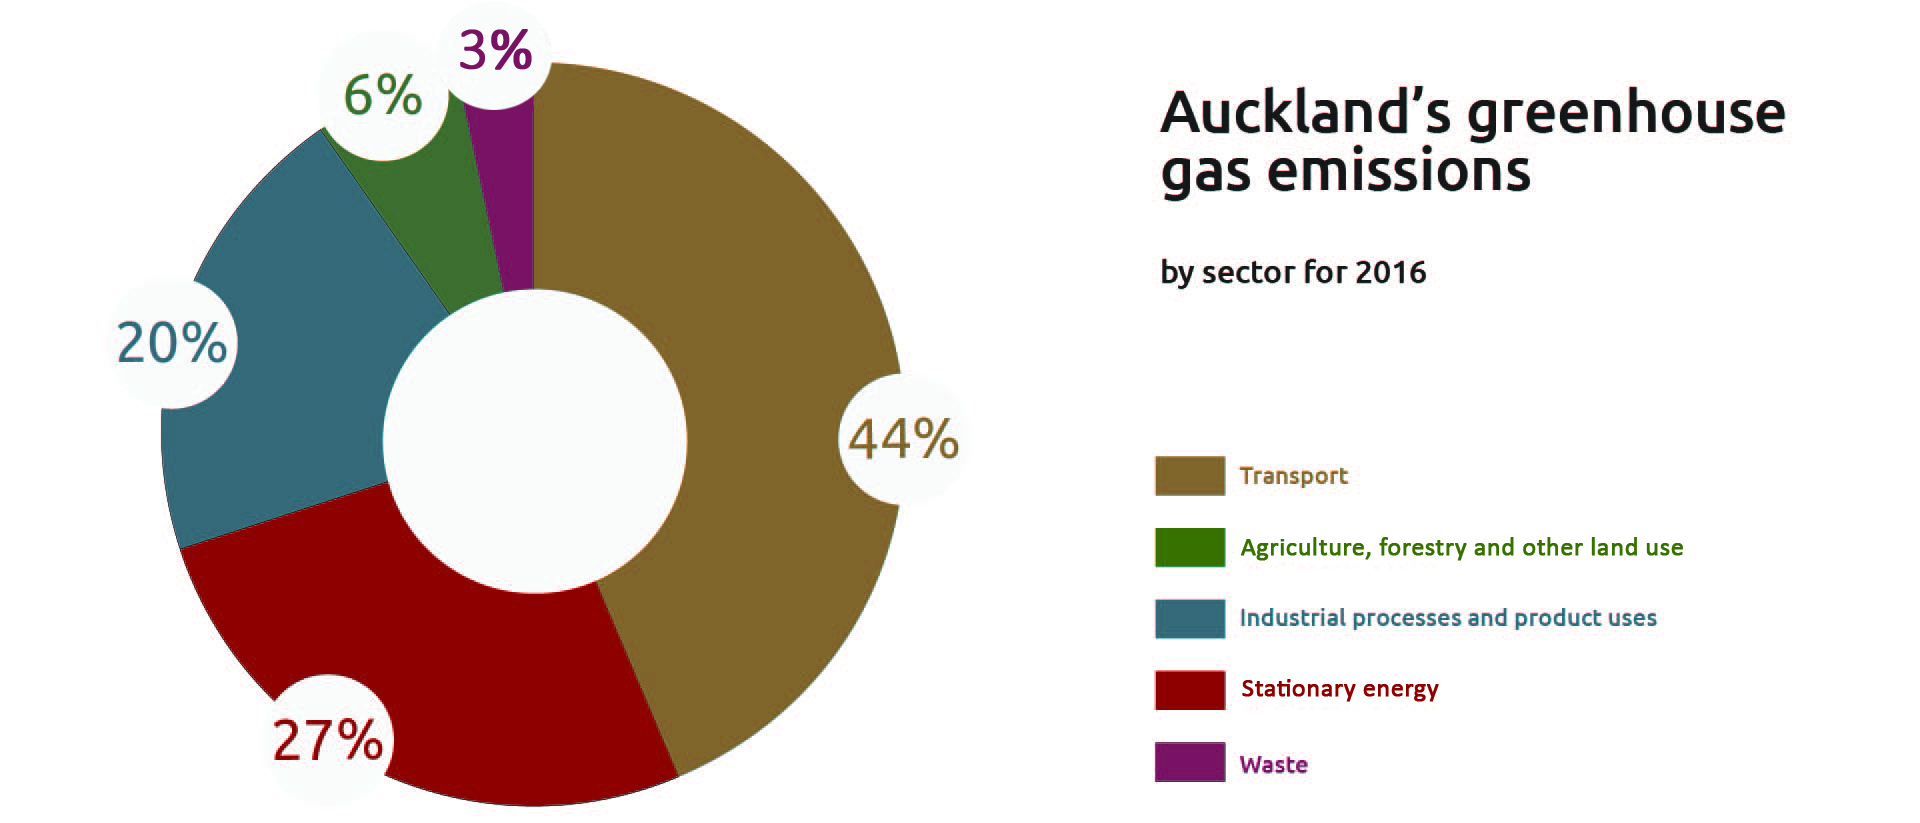 Auckland greenhouse gas inventory in a circular graph.